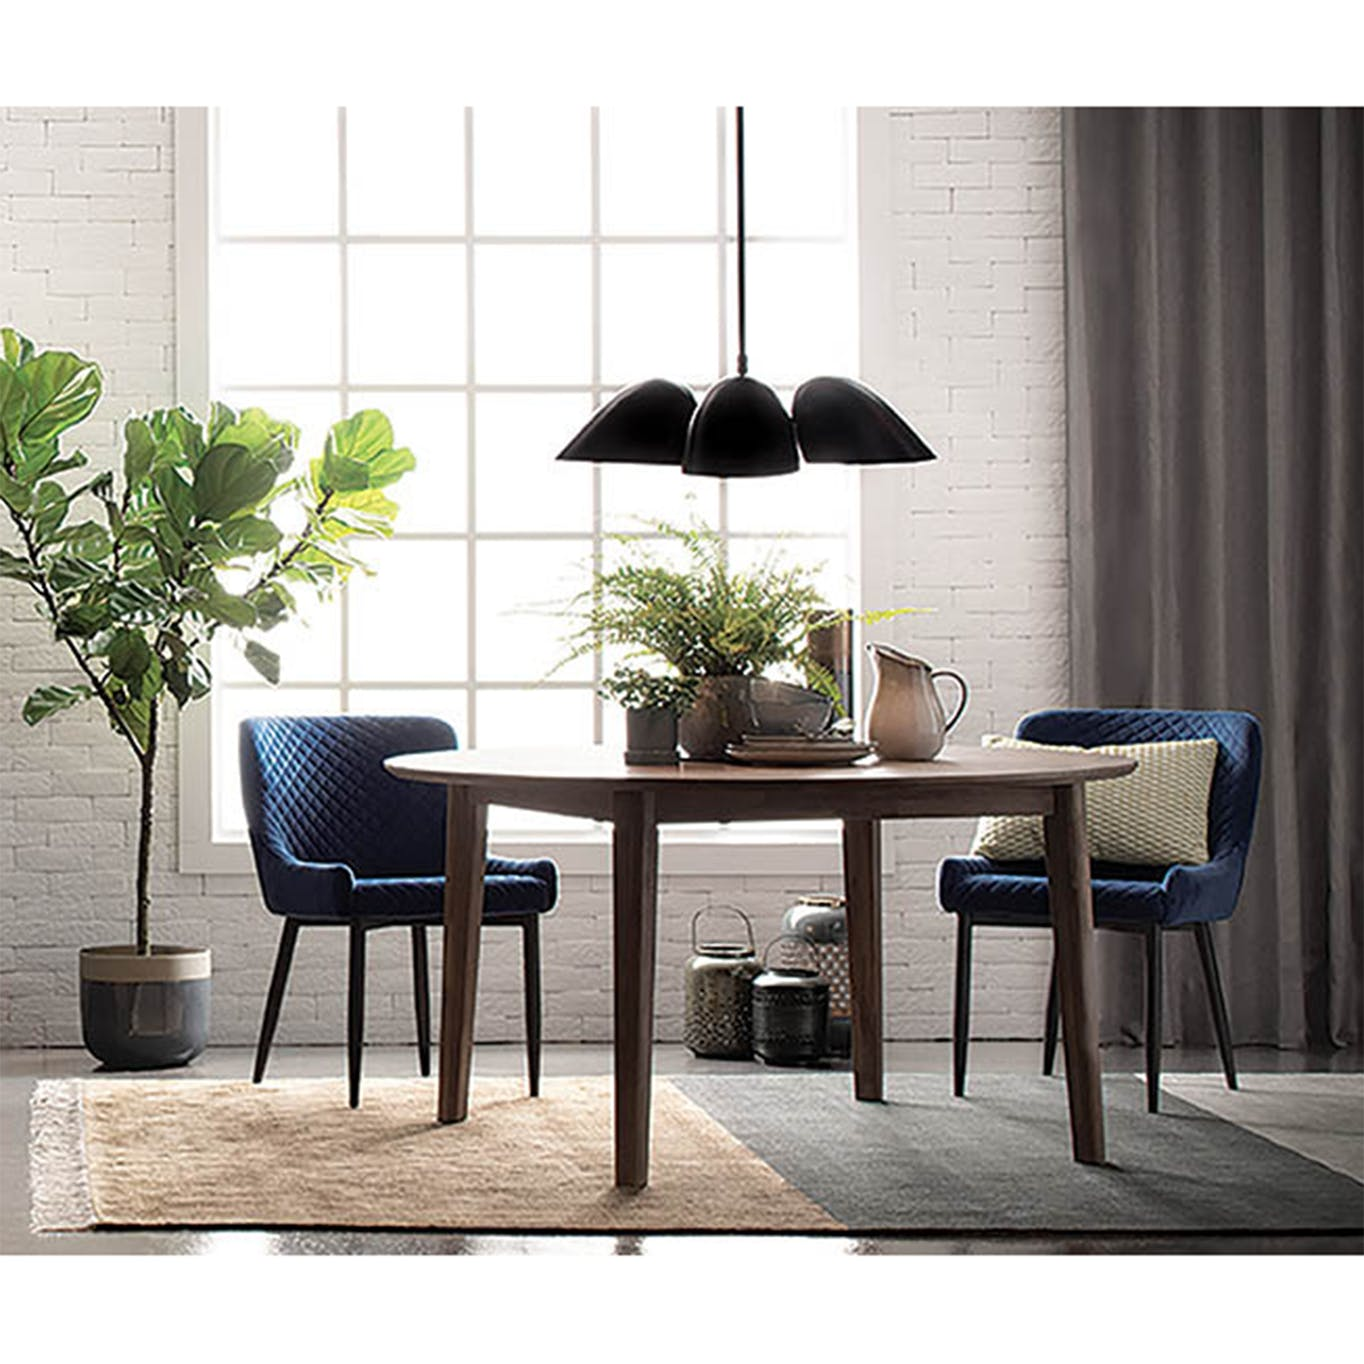 Round wooden dining table with blue velvet fabric dining chairs